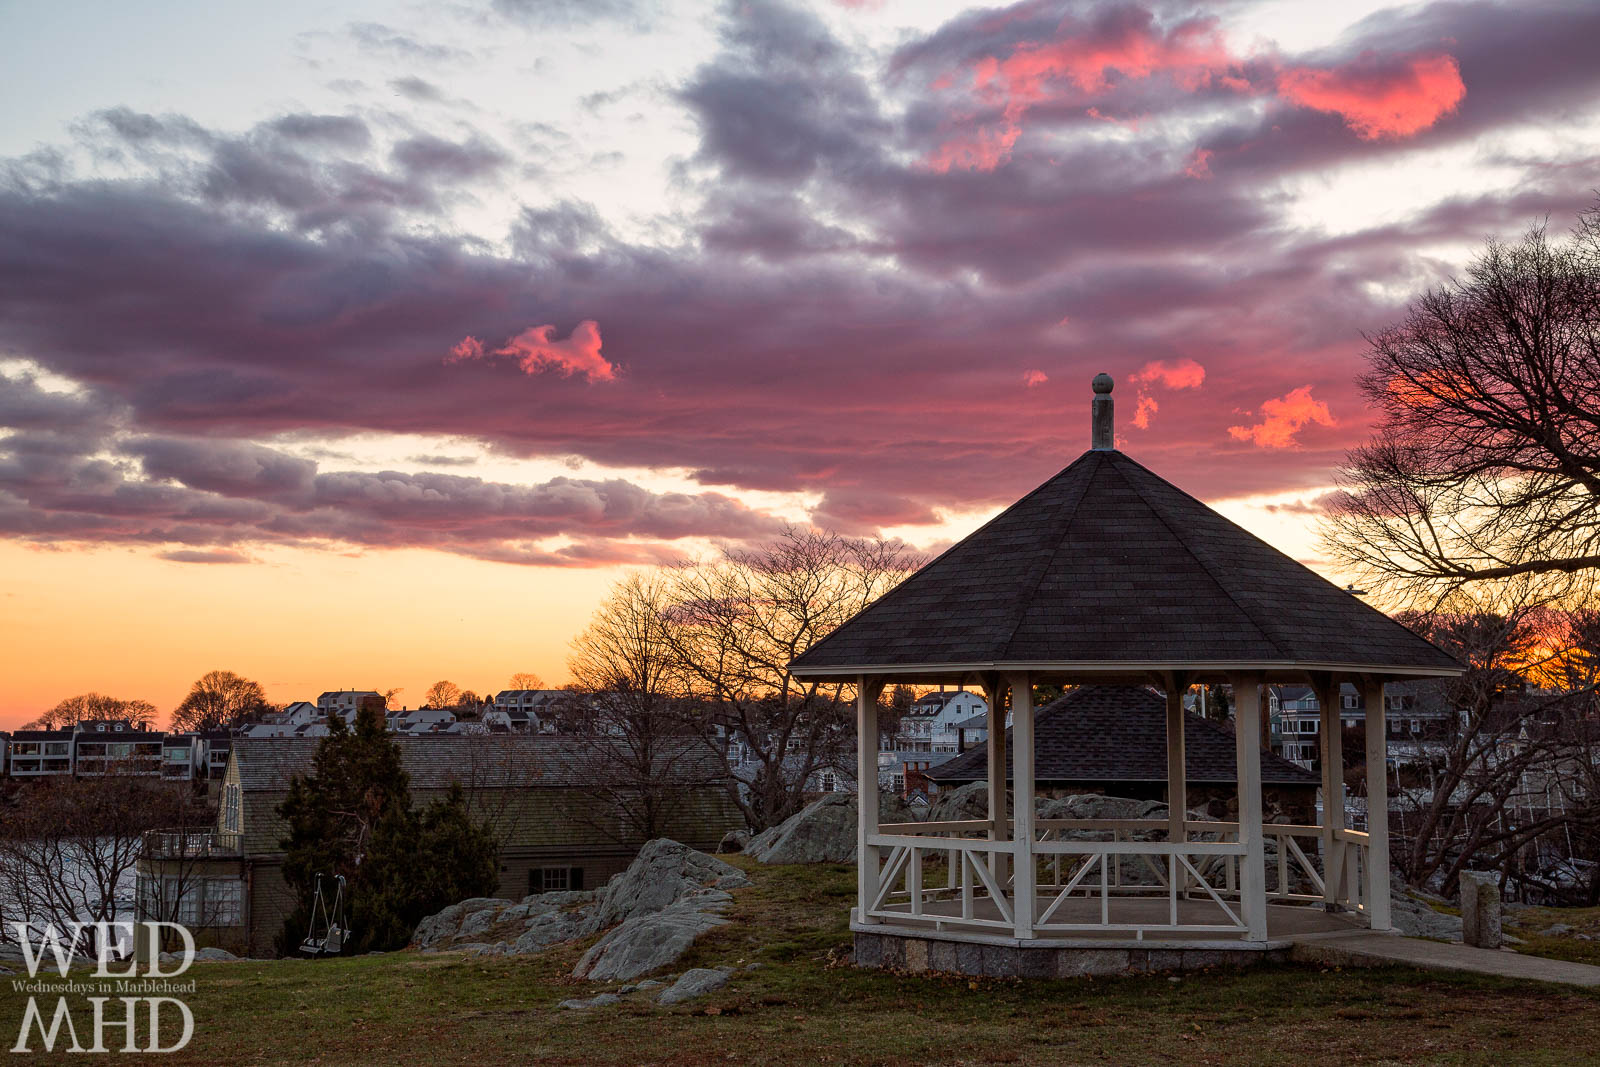 A late November image from Crocker Park focuses on the gazebo at sunset